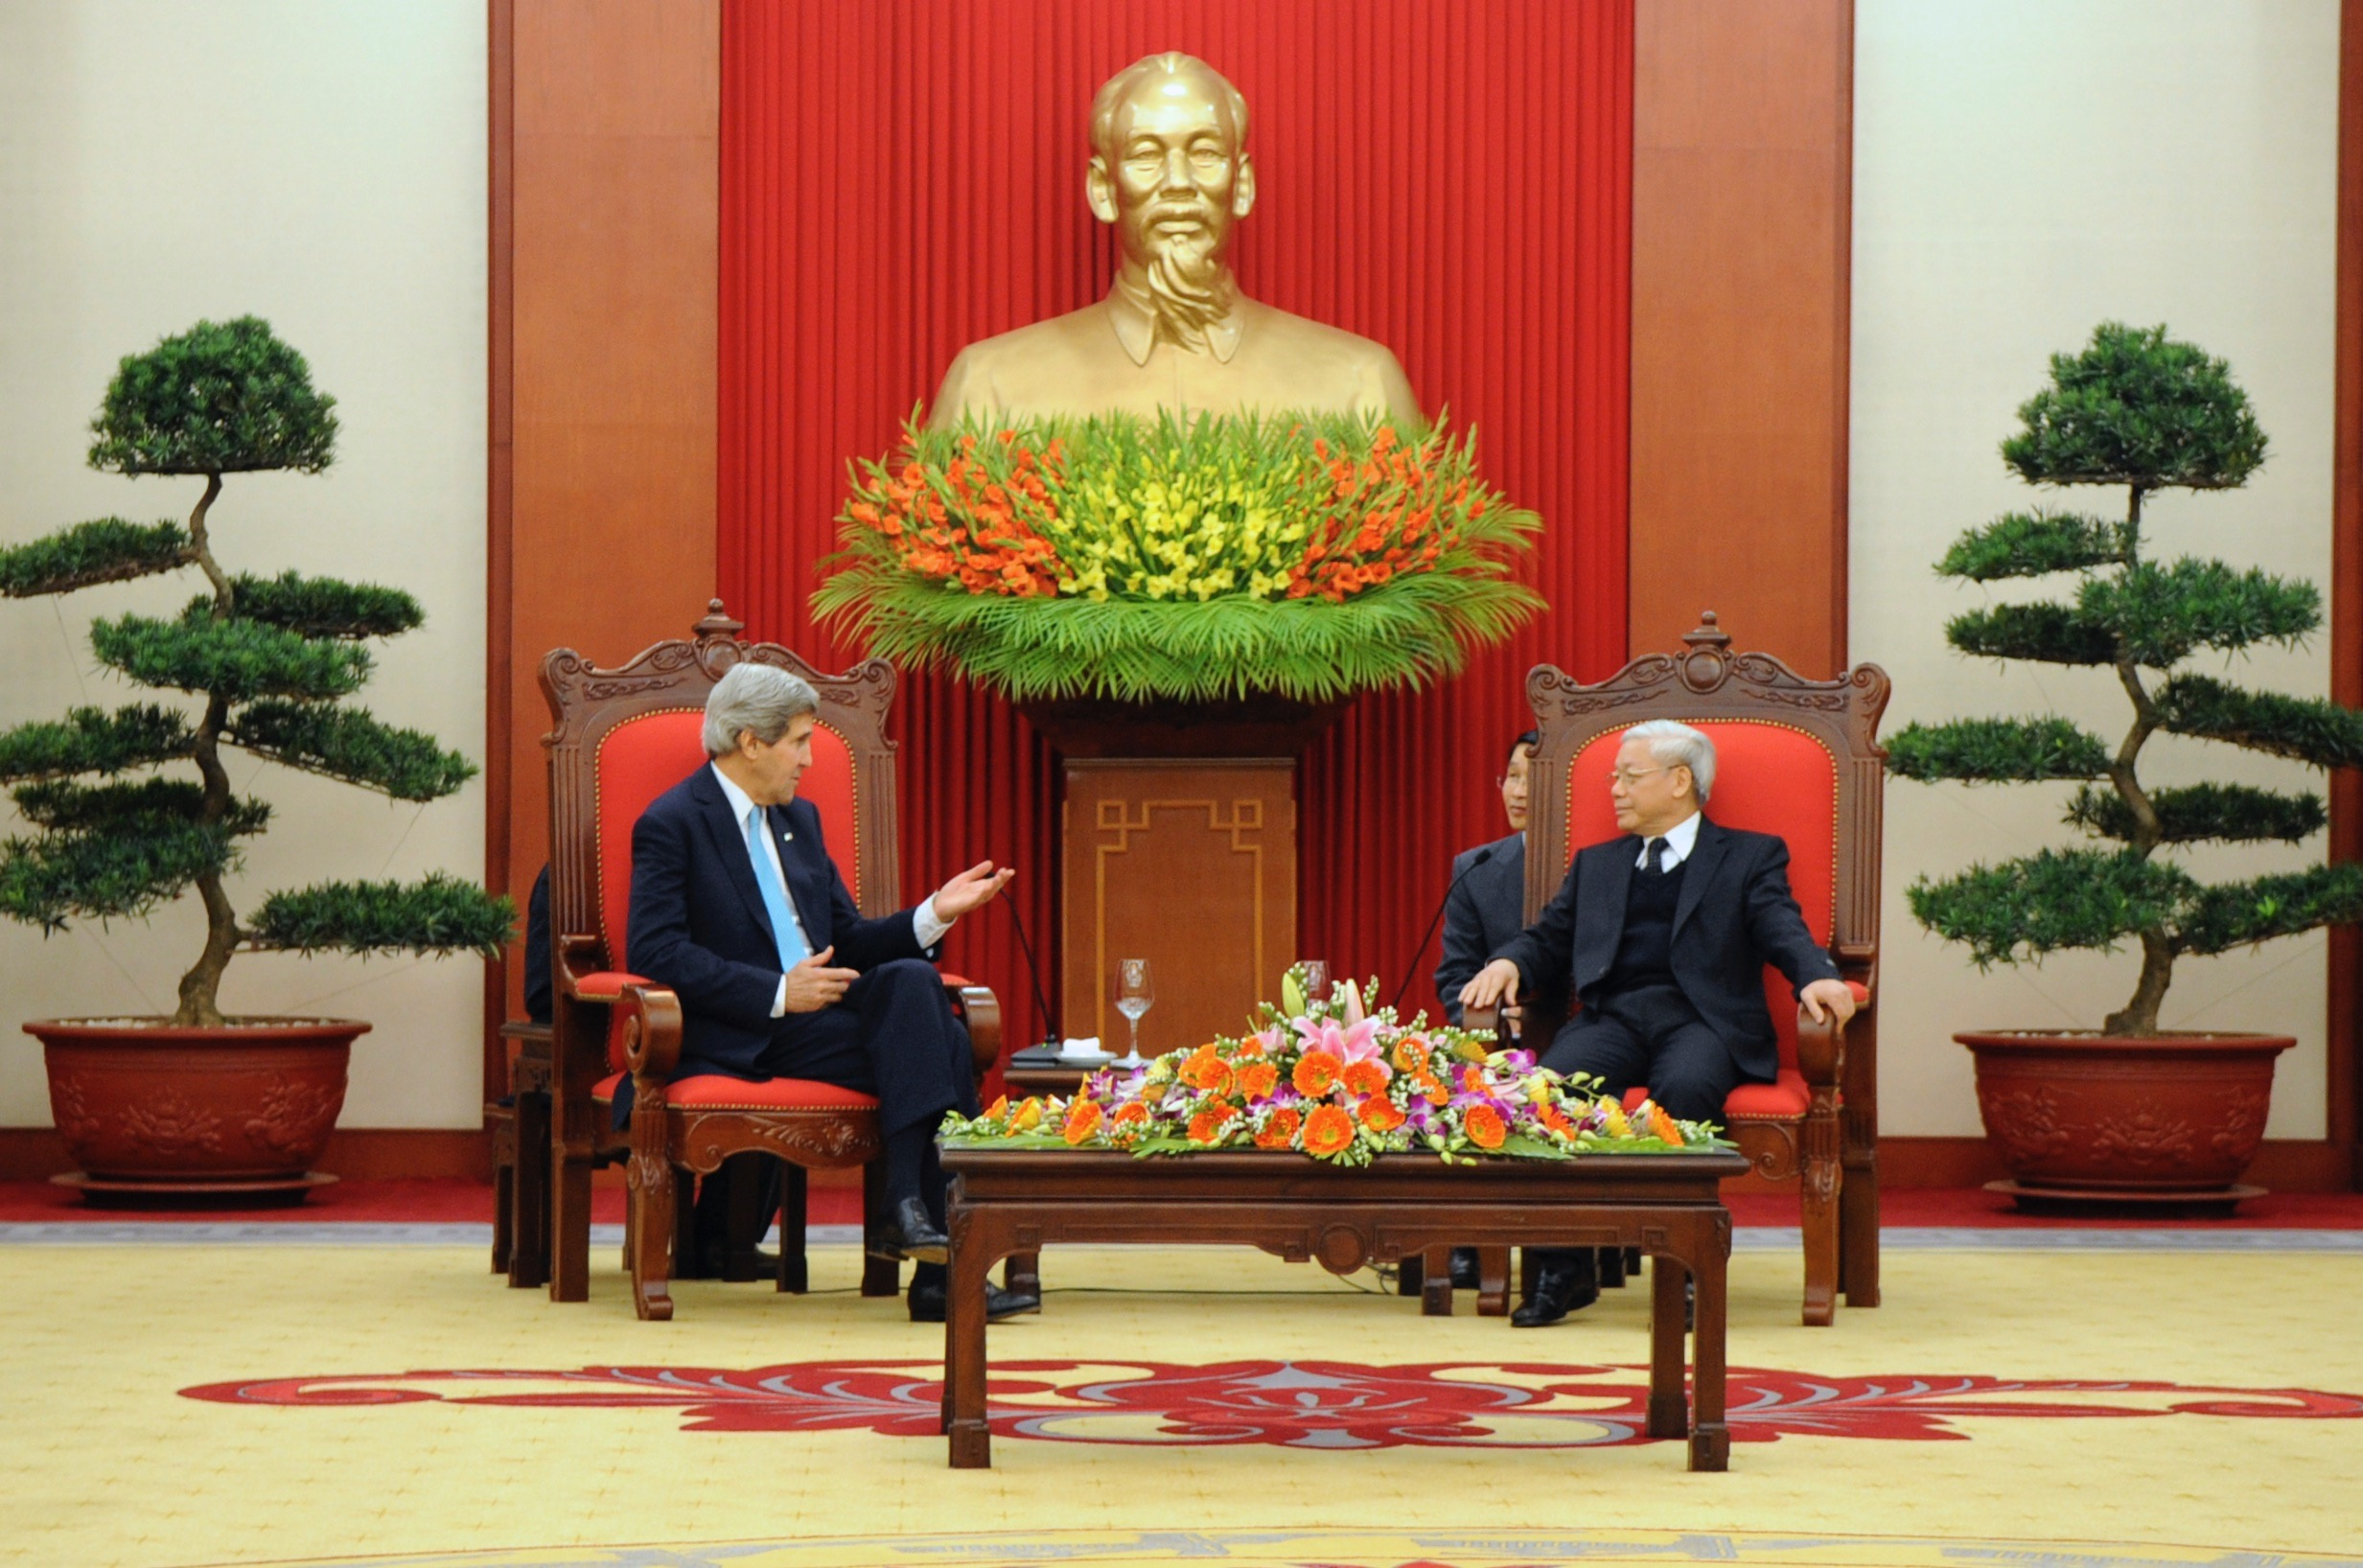 A typical government meeting in the shadow of Ho Chi Minh.